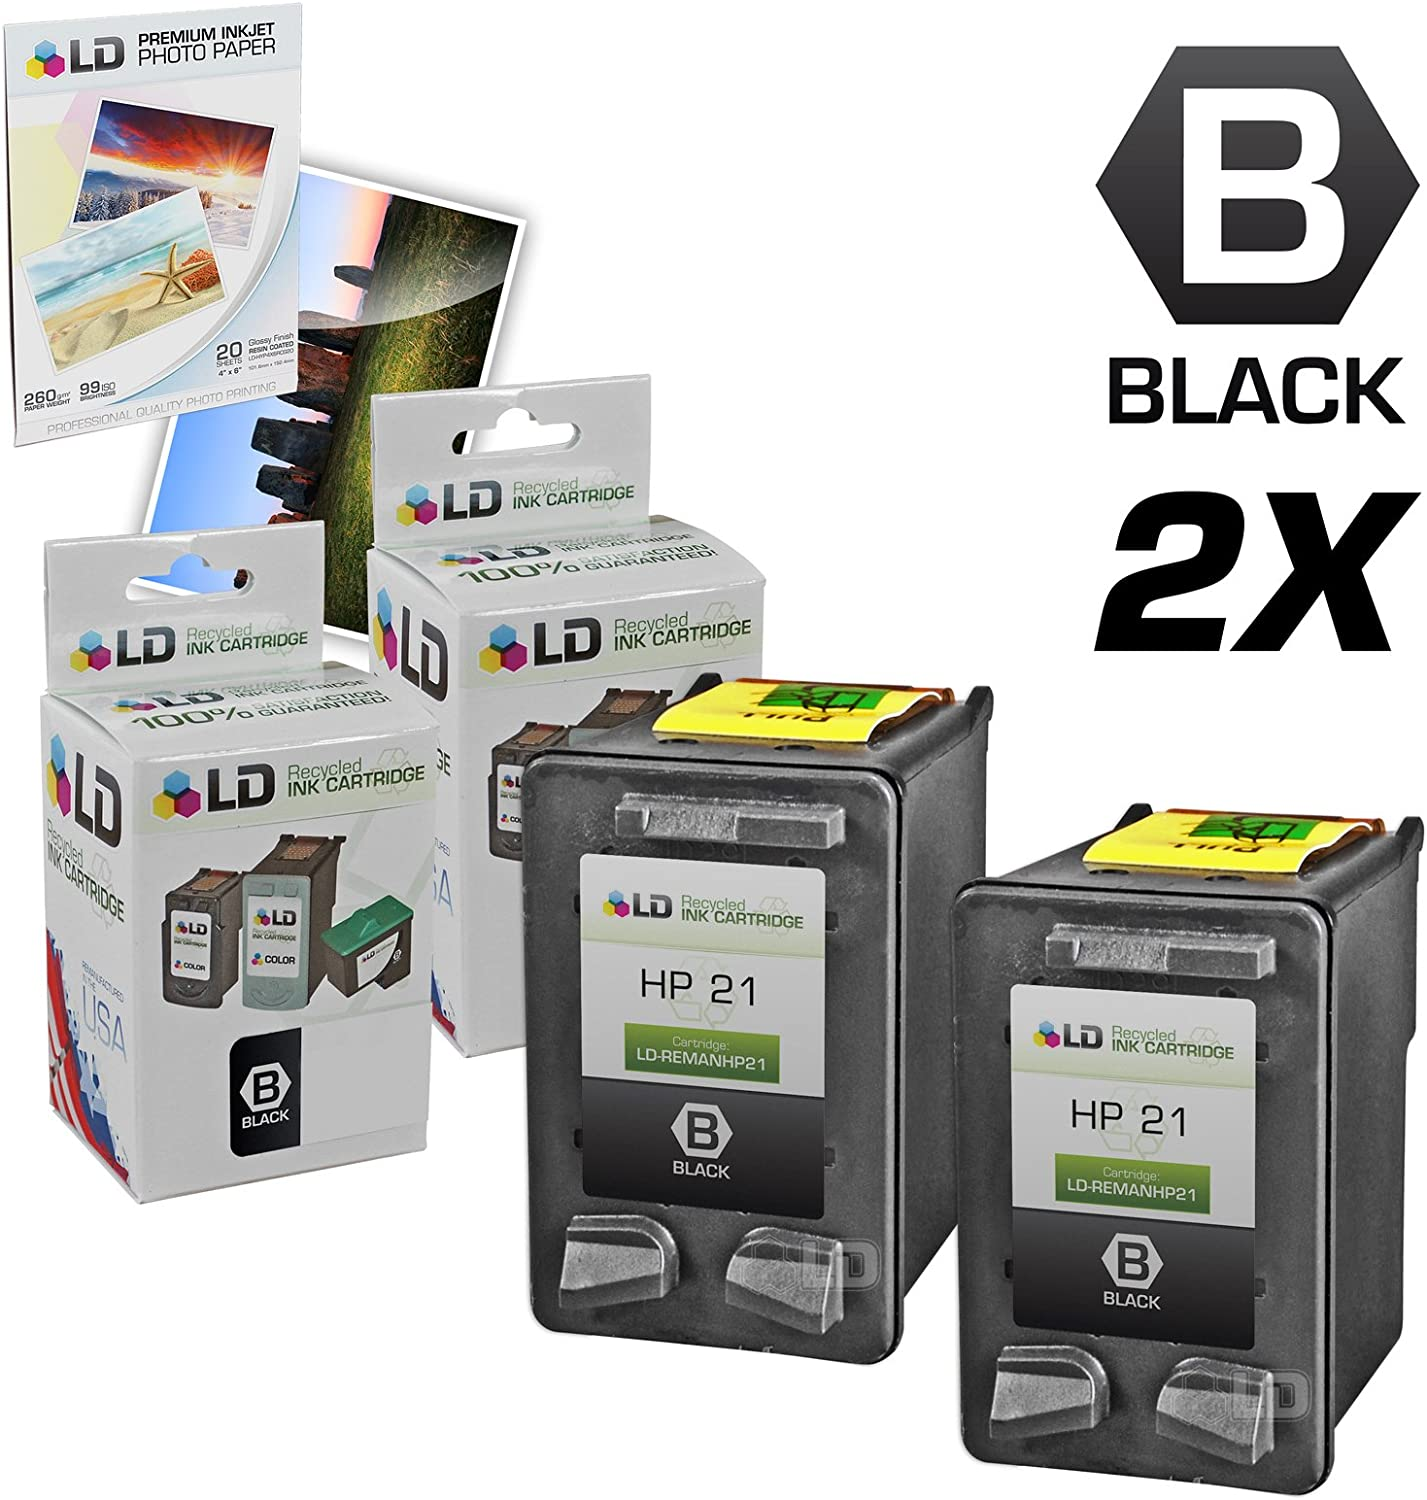 LD Remanufactured Ink Cartridge Replacement for HP 21 C9351AN (Black, 2-Pack)